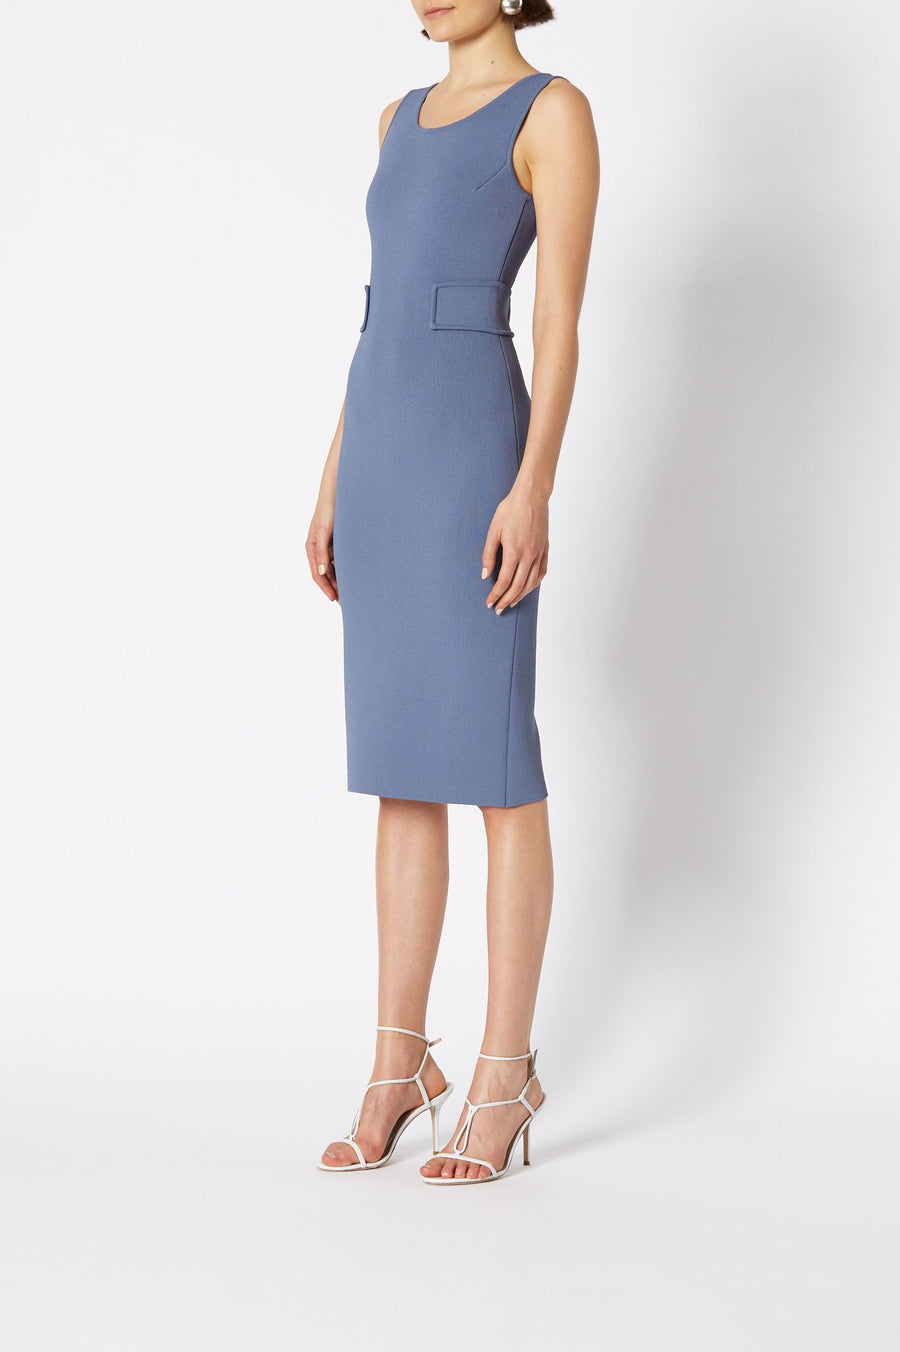 CREPE KNIT SCOOP NECK DRESS, SHORT SLEEVE, FALLS BELOW KNEE, FEATURES SIDE PANELS, COLOR LIGHT INDIGO